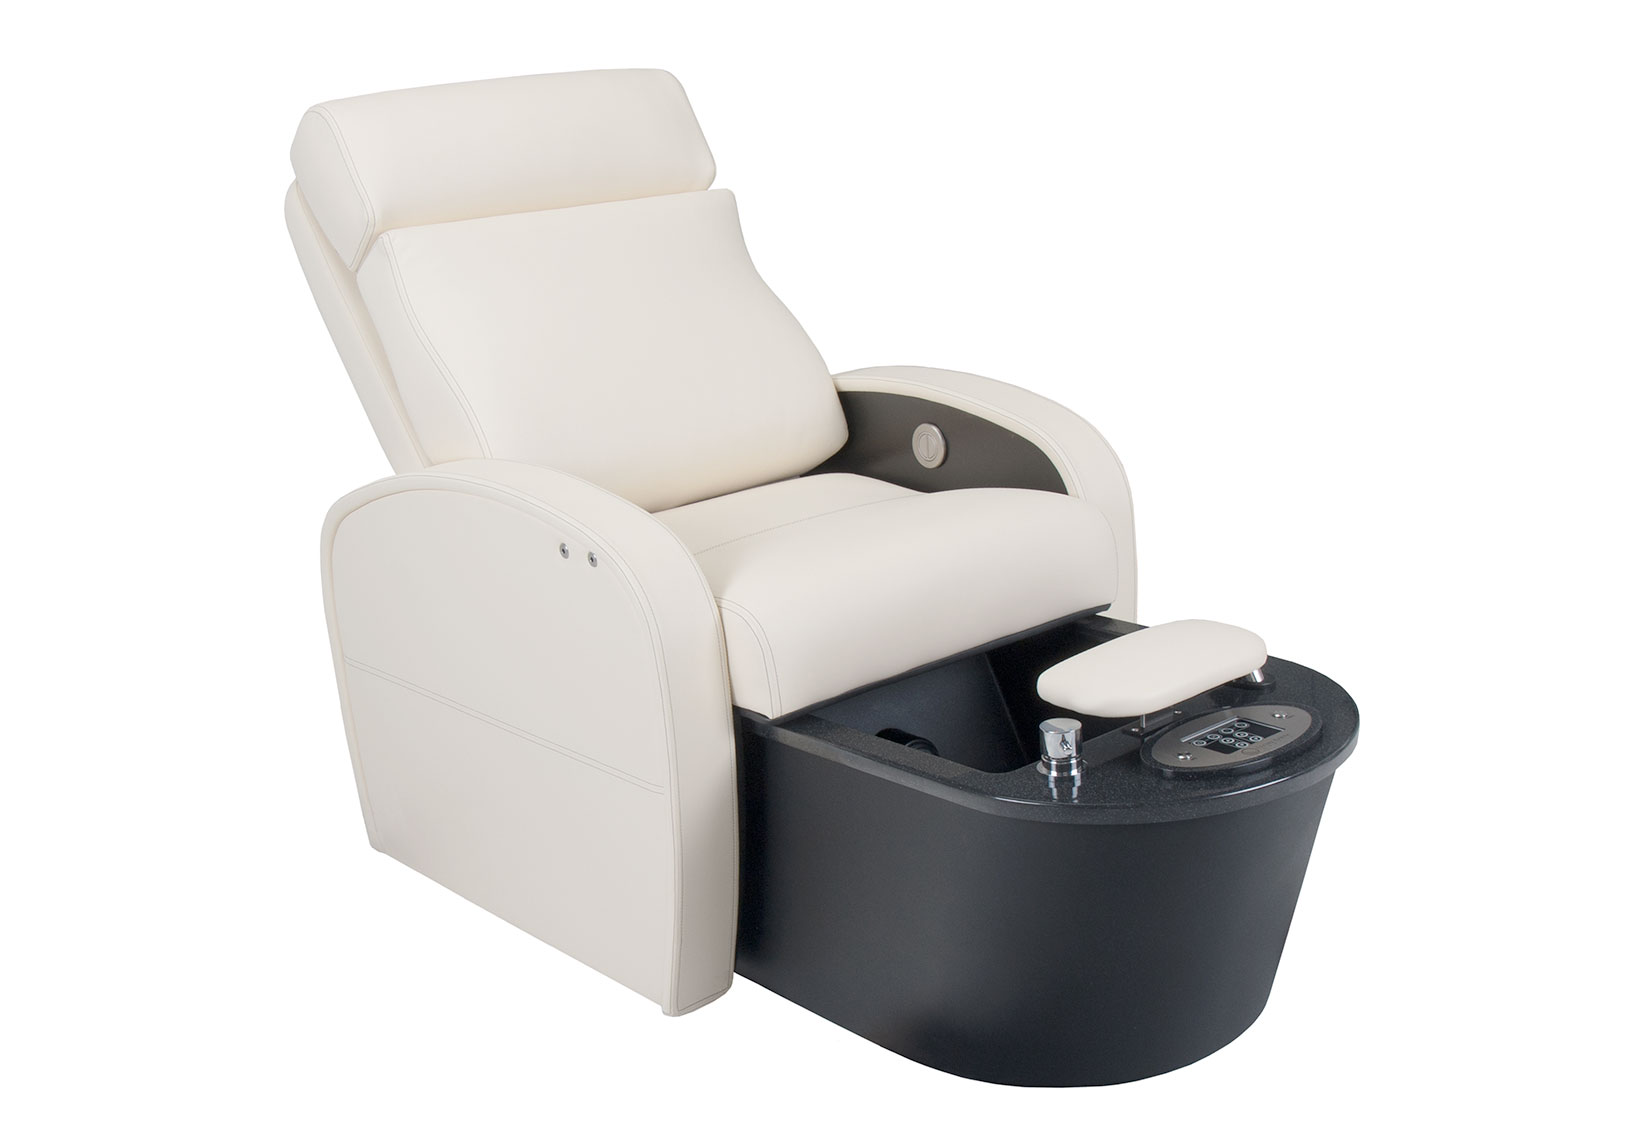 bowls pedicure j and equipment chair tables m by chairs lenox mani pedi furniture luxury spas ihwx spa category a